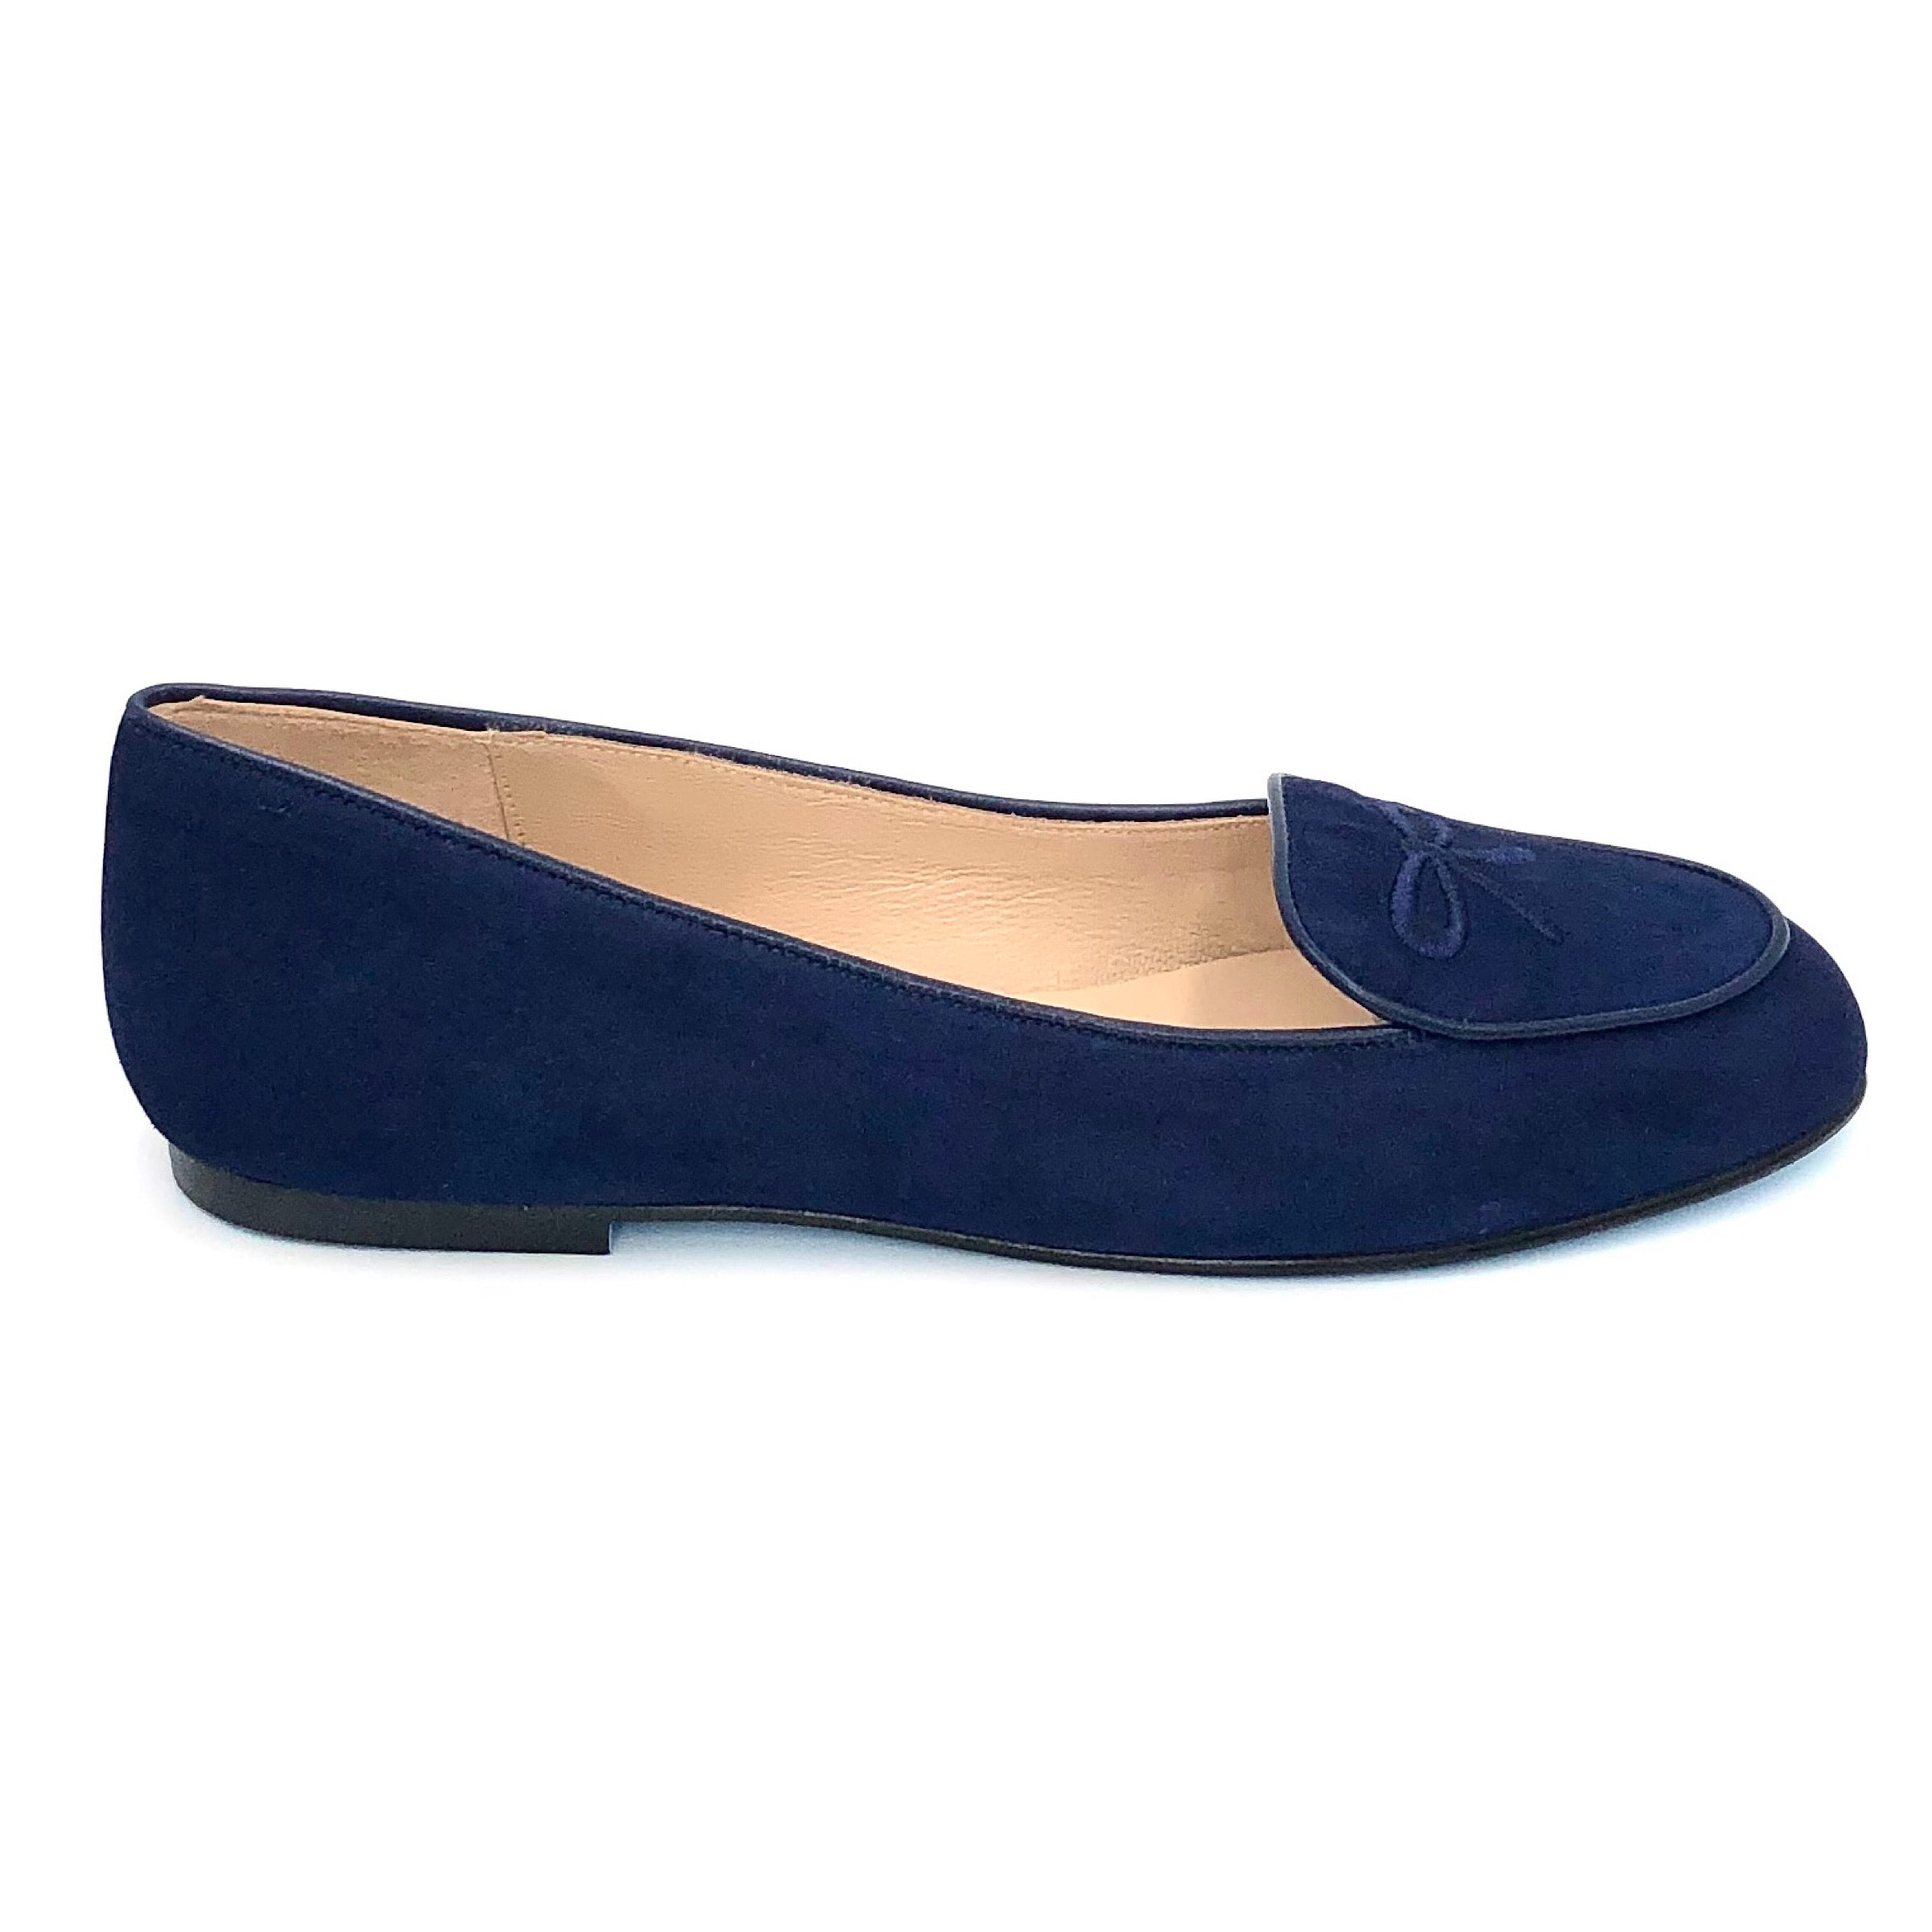 The Belgium Loafer in Navy